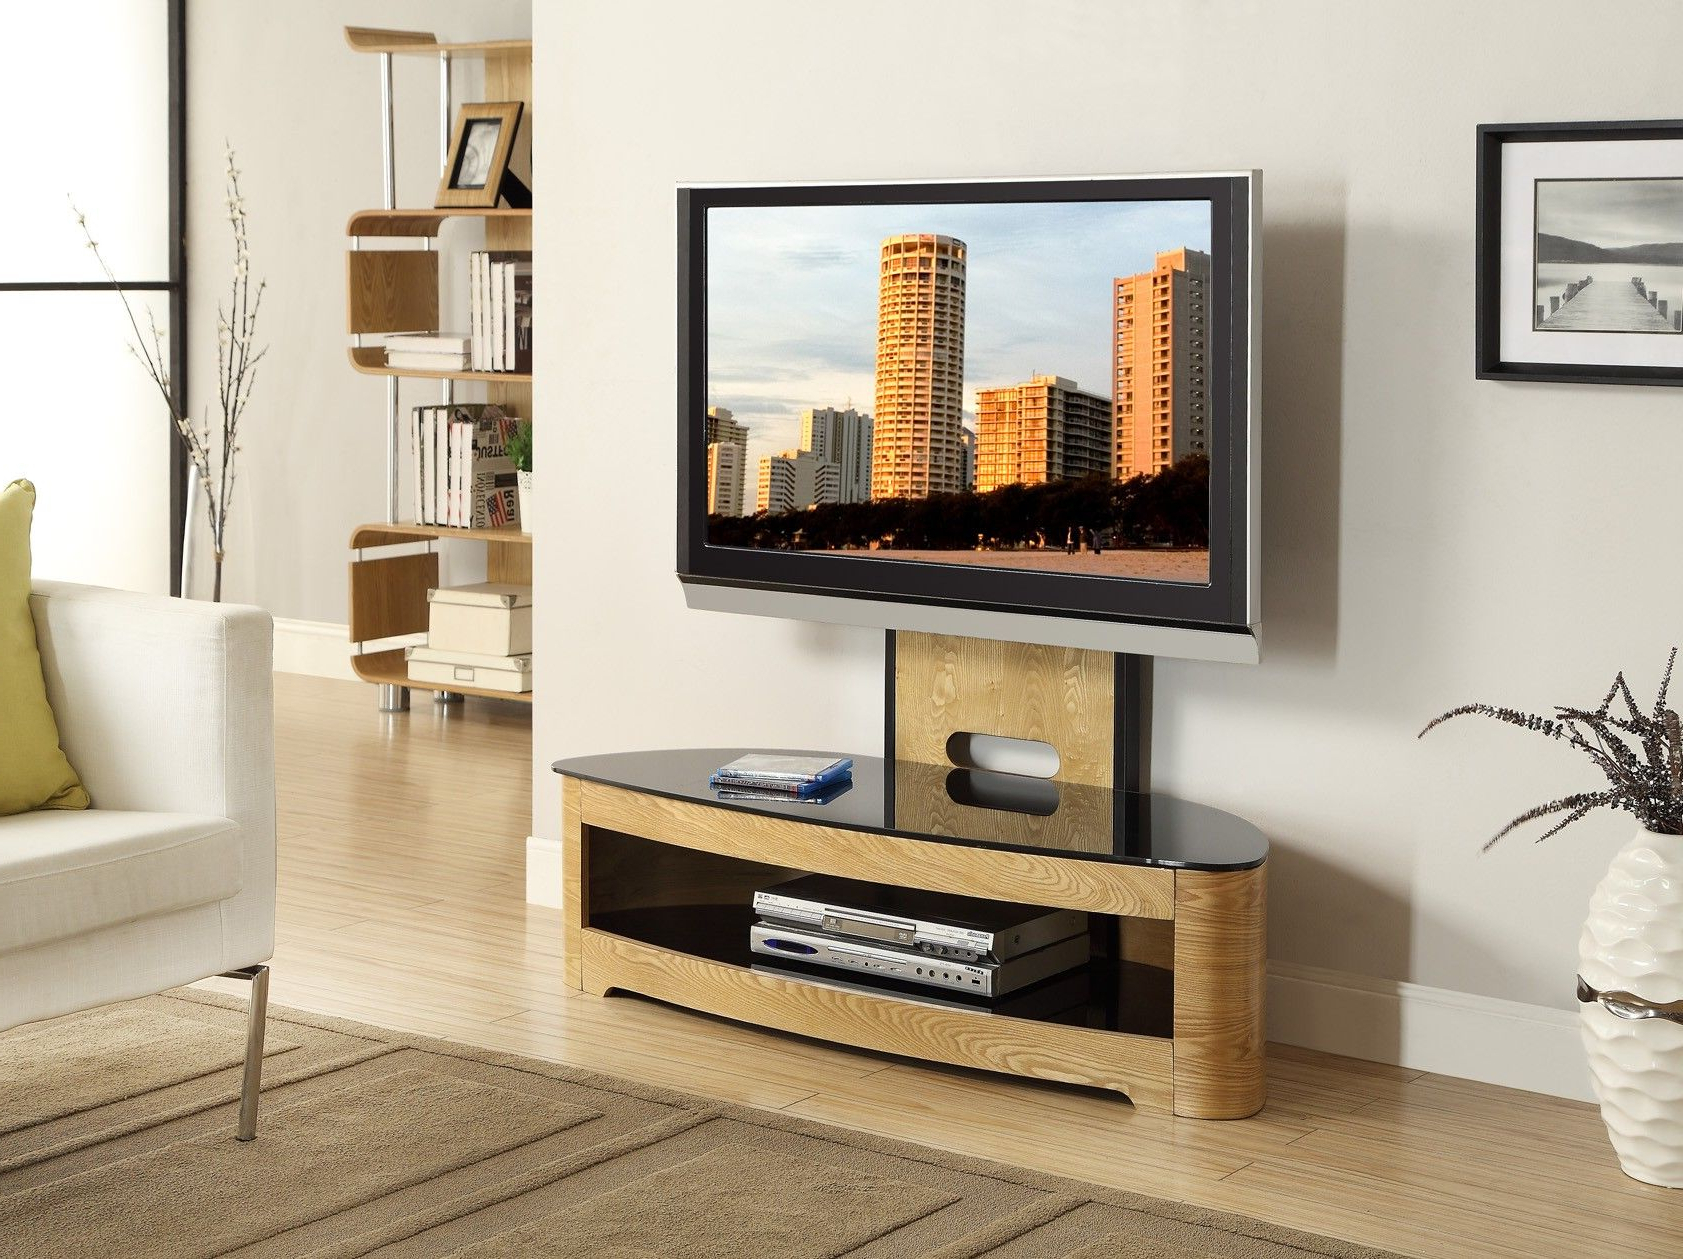 Tv Stand Cantilever Throughout Well Known Jual Furnishings Jf209 Curved Oak Cantilever Tv Stand Upto  (View 15 of 20)